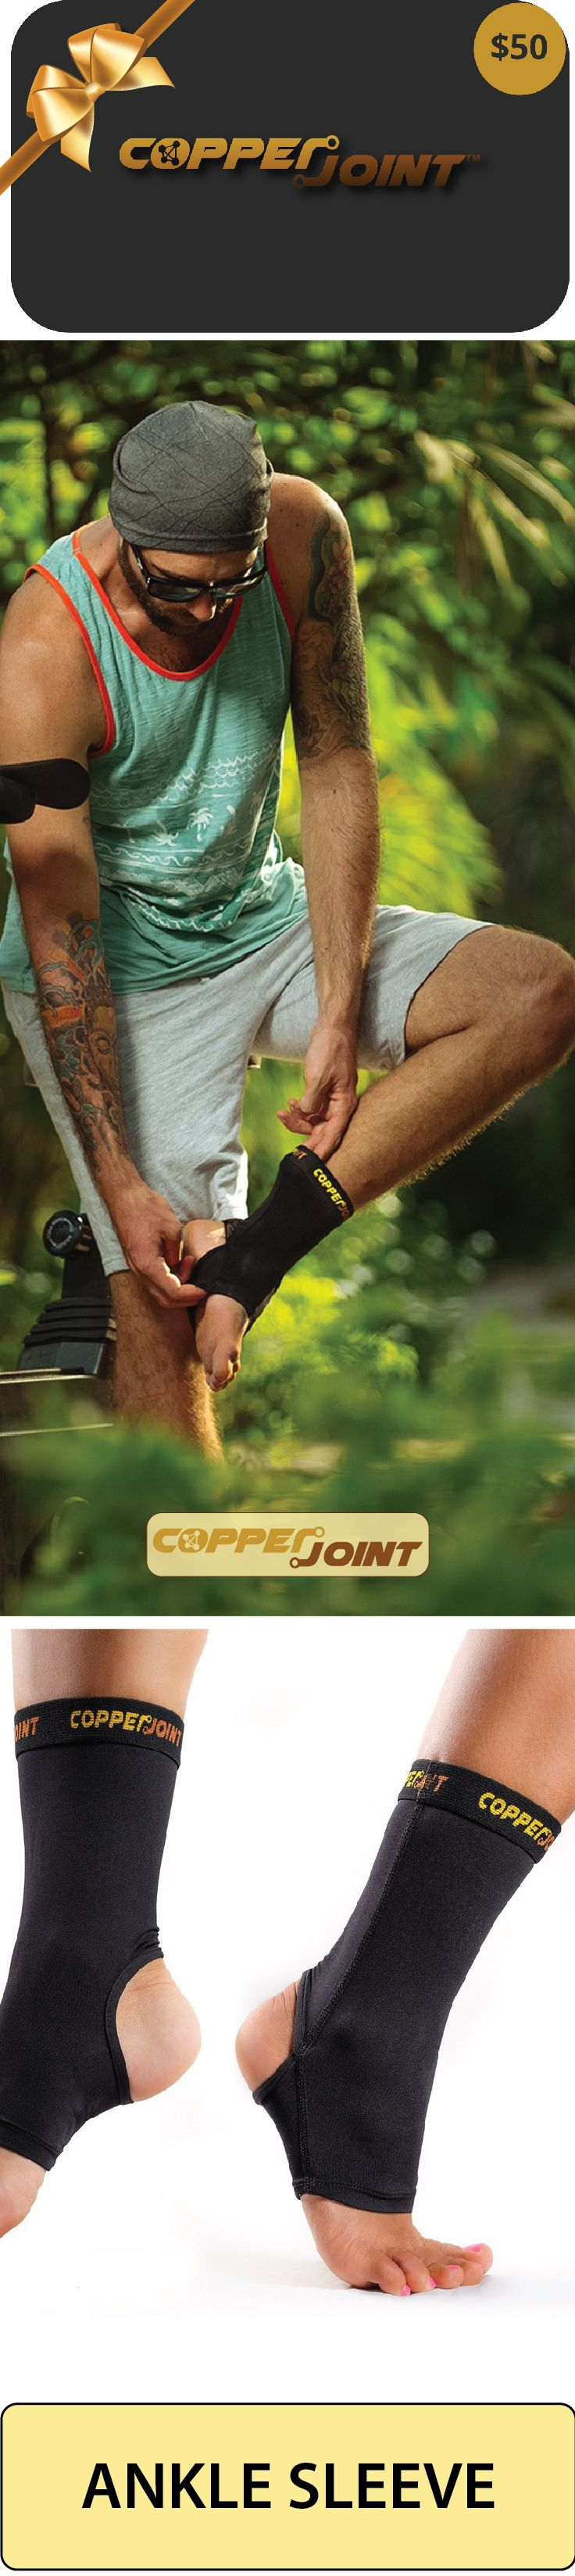 Durable, light weight and comfortable, gives you just the right level of support, keeps your sore ankle secure and warm so YOU can feel better and more secure, gives you added comfort, takes the pain away and helps you move around easily.